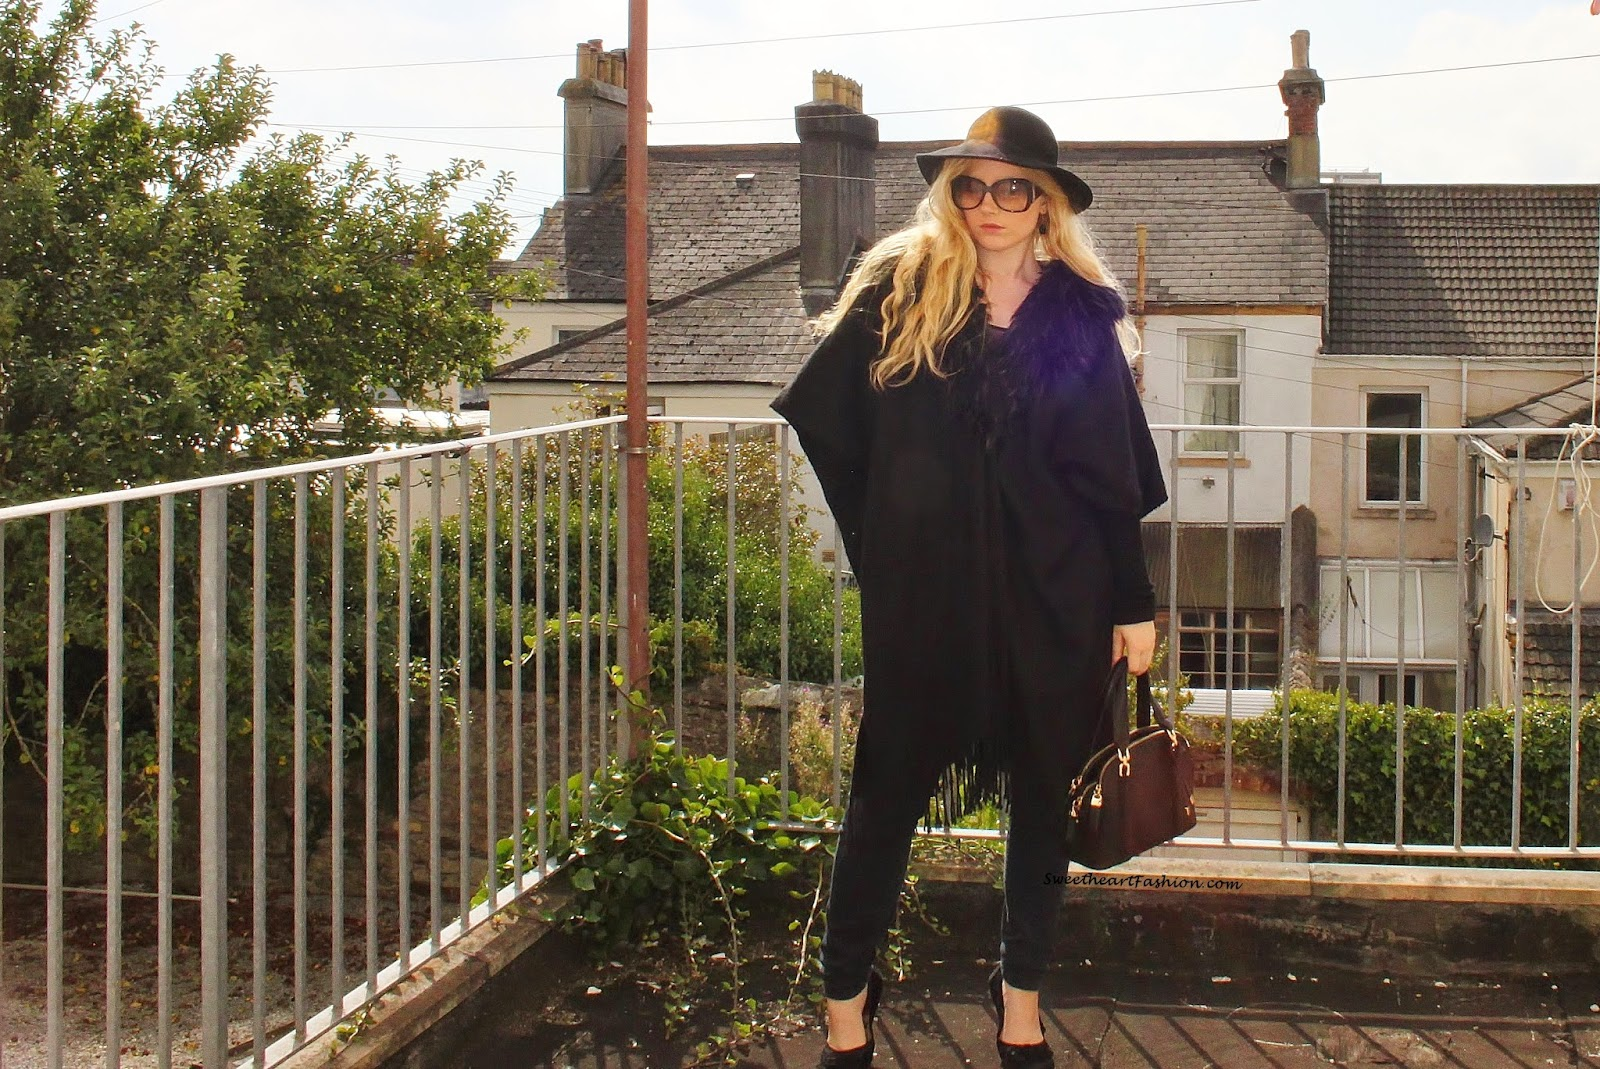 c21ea283d4b Hat - Topshop Sunglasses - Gucci Earrings - Gift Cape - Second-hand. Top -  Topshop Bag - Next Jeans - River Island Shoes - Accessorize